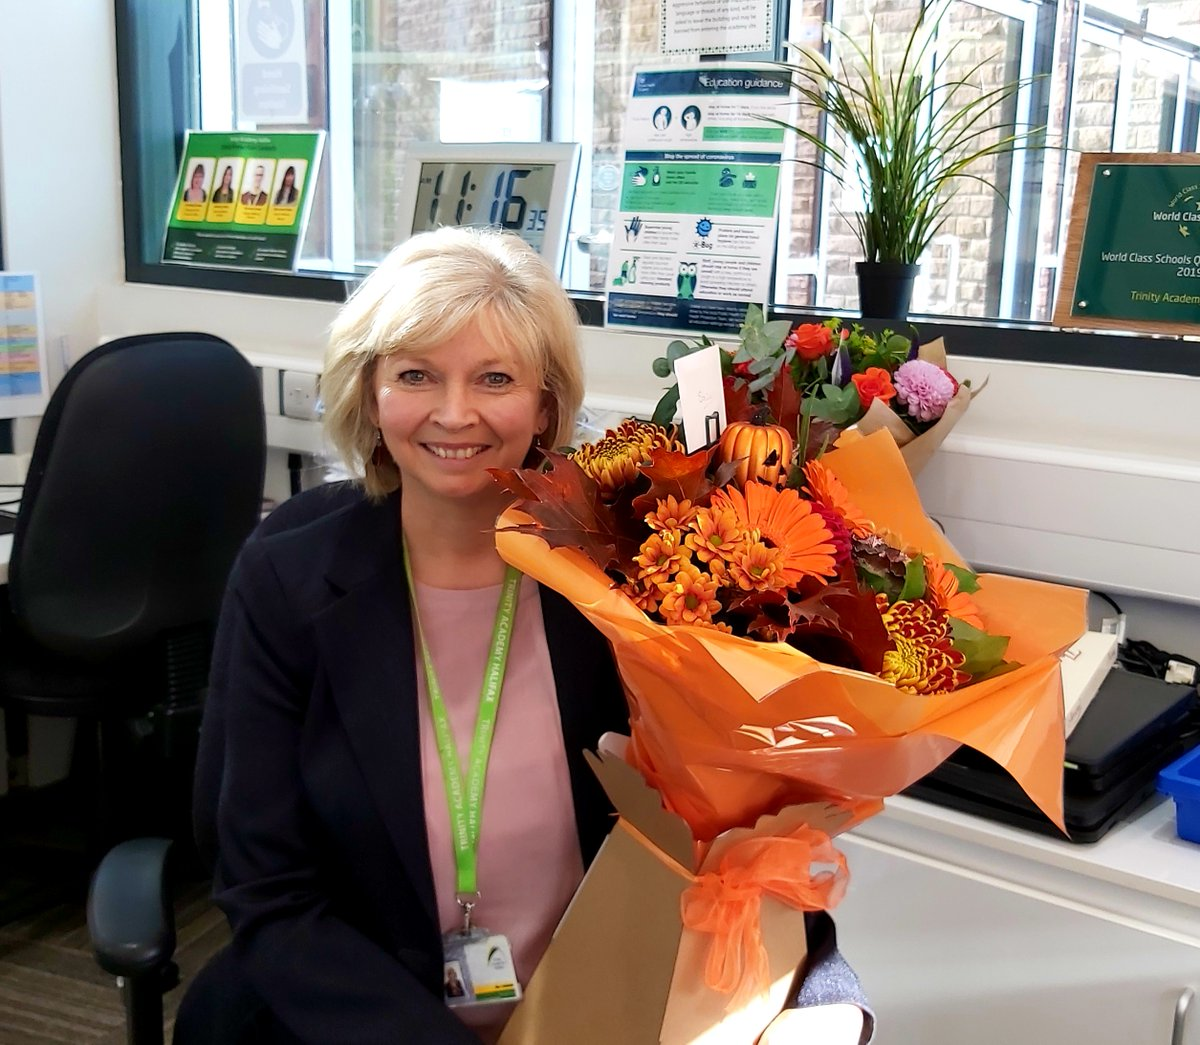 We would like to wish our Receptionist Mrs Baldwin a very happy retirement after 17 years service, we hope that this next chapter of her life brings endless time to do the things she enjoys! She will be missed by everyone at the academy!💐❤️